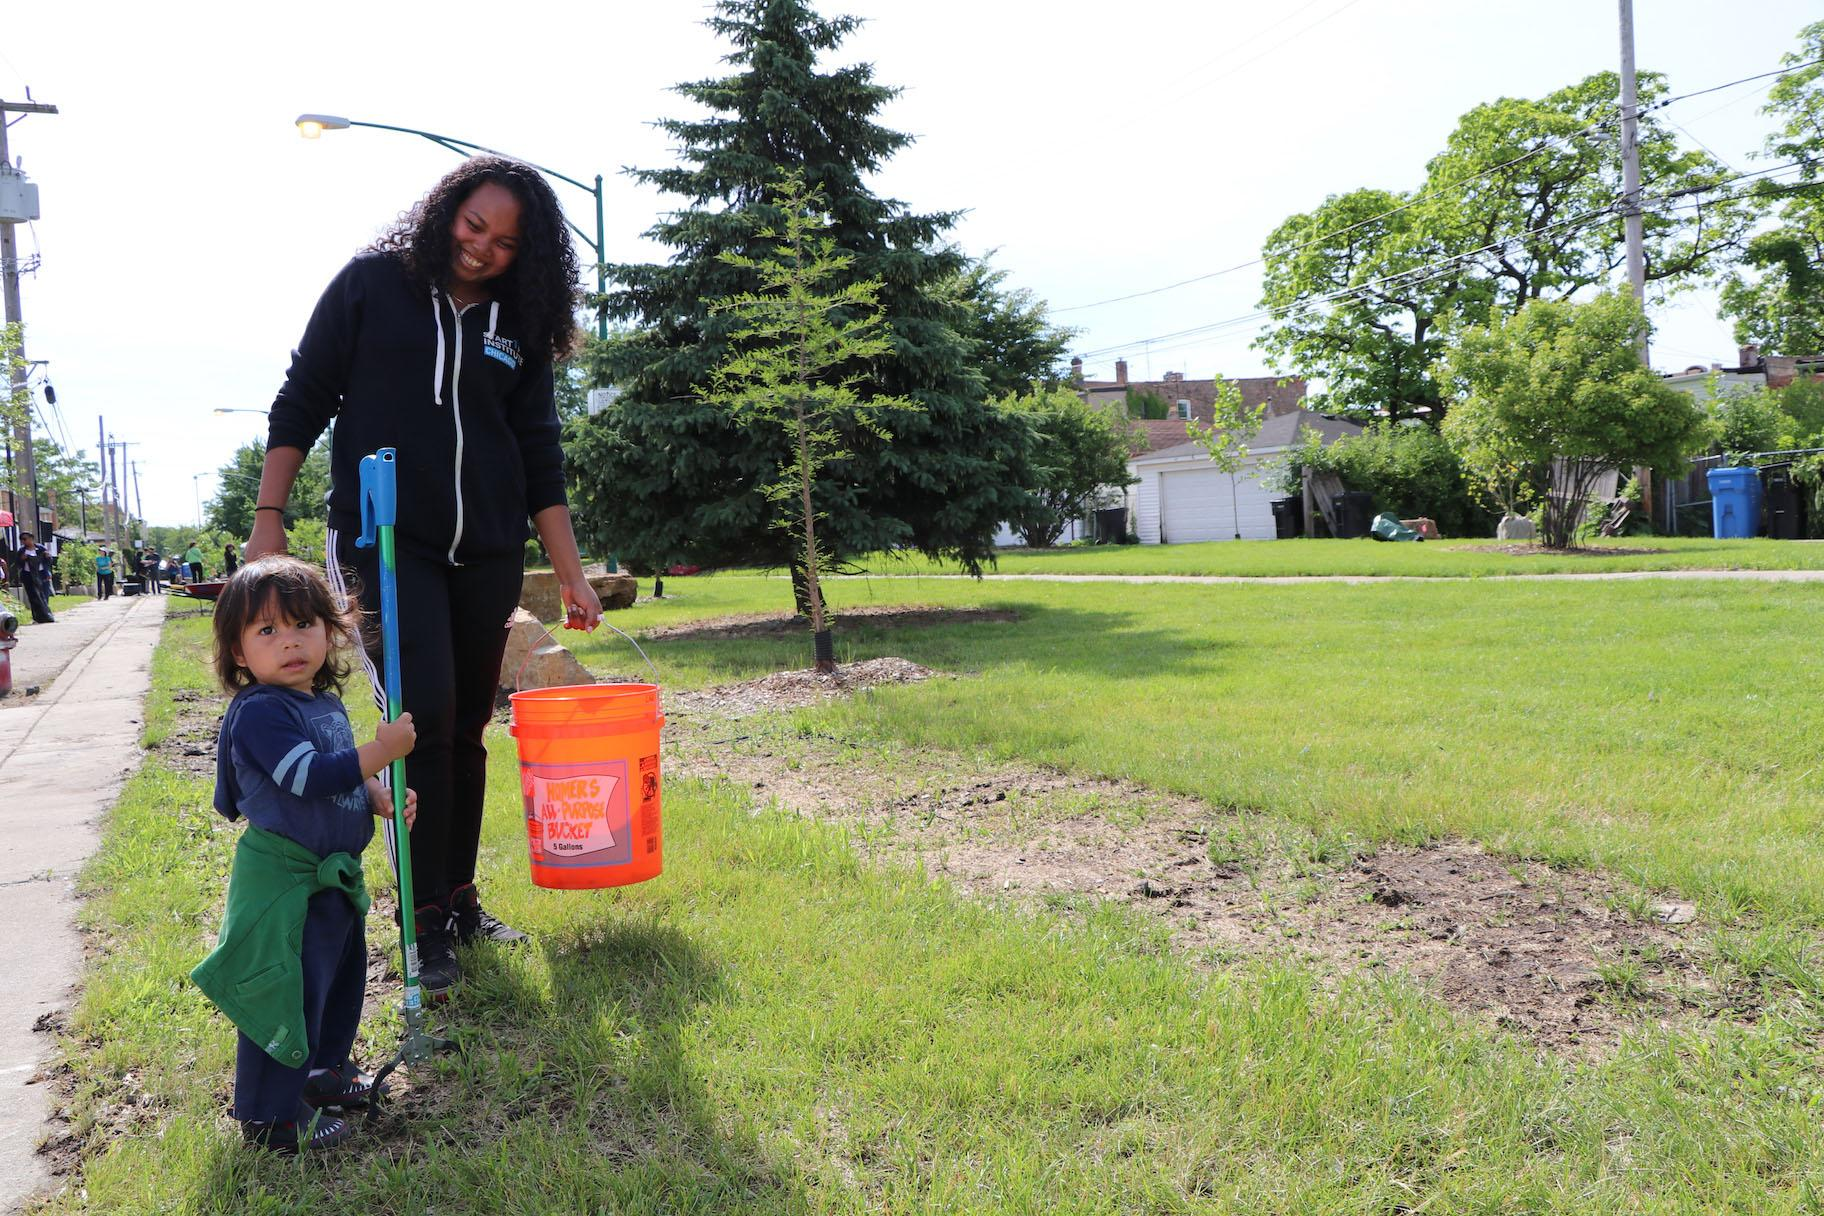 Volunteer Meia Santos and her son Arlo Garcia pick up litter at the event. (Evan Garcia / WTTW)